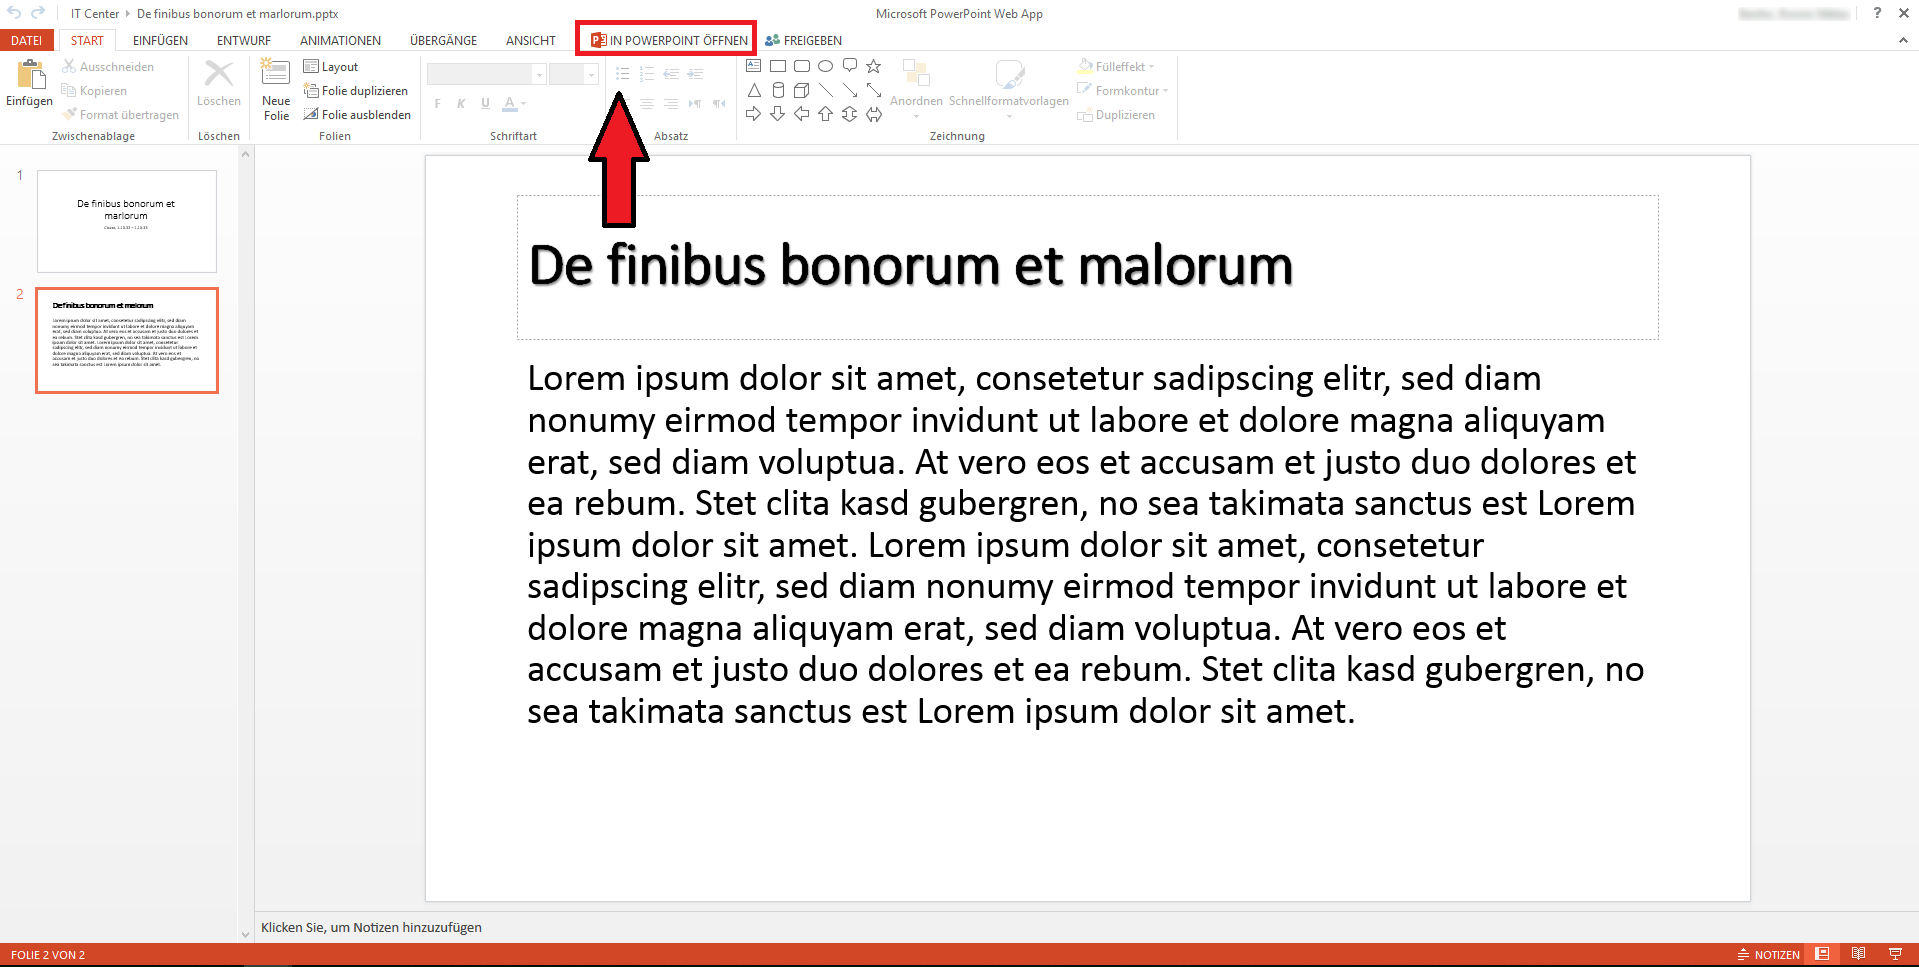 PowerPoint Web App editing-view